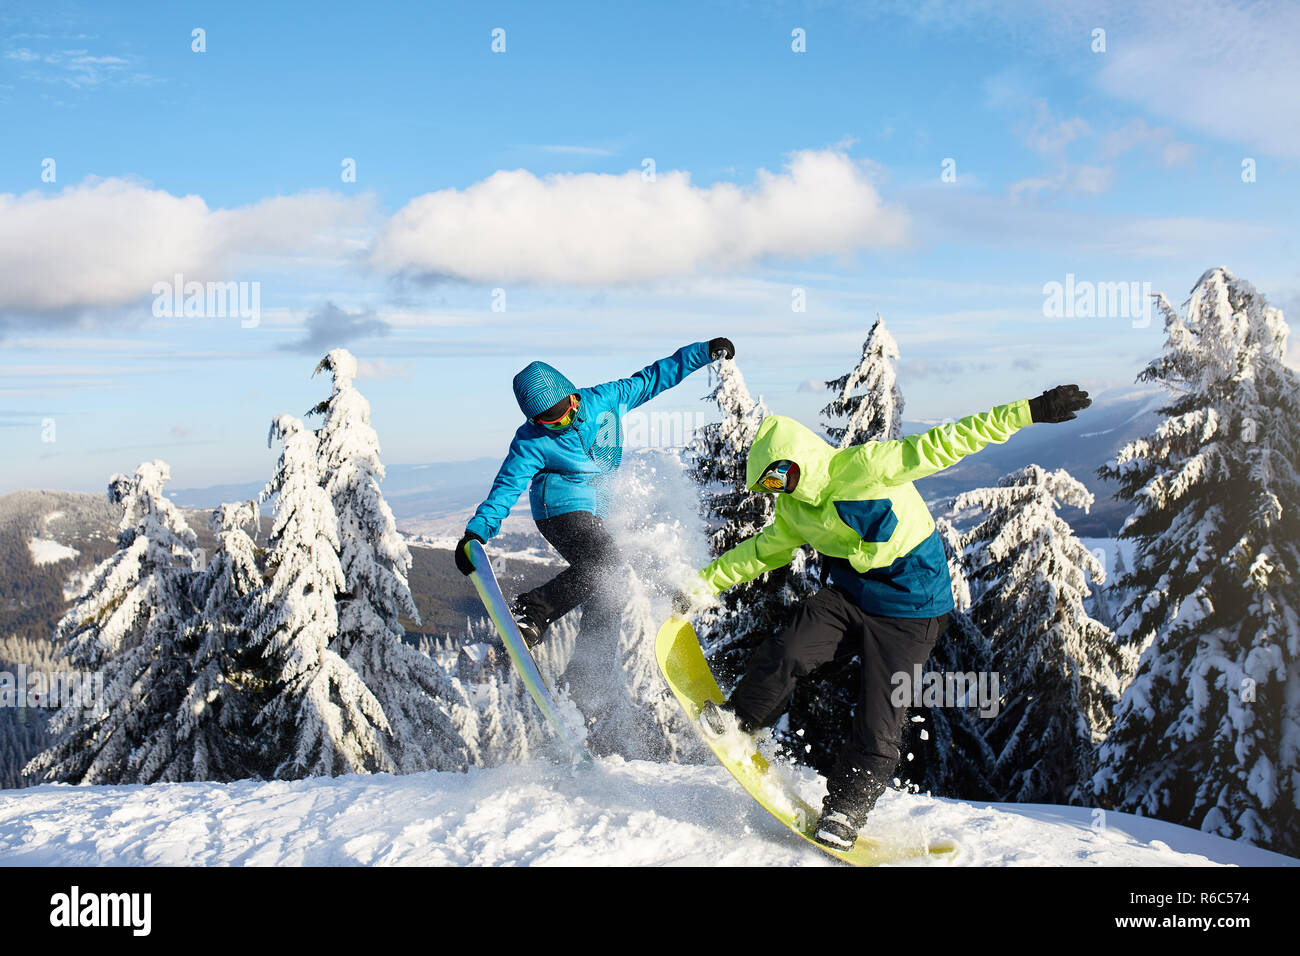 Two snowboarders doing tricks at ski resort. Riders friends performing jump with their snowboards near forest on backcountry freeride session in colorful fashionable outfit. Copyspace area. - Stock Image